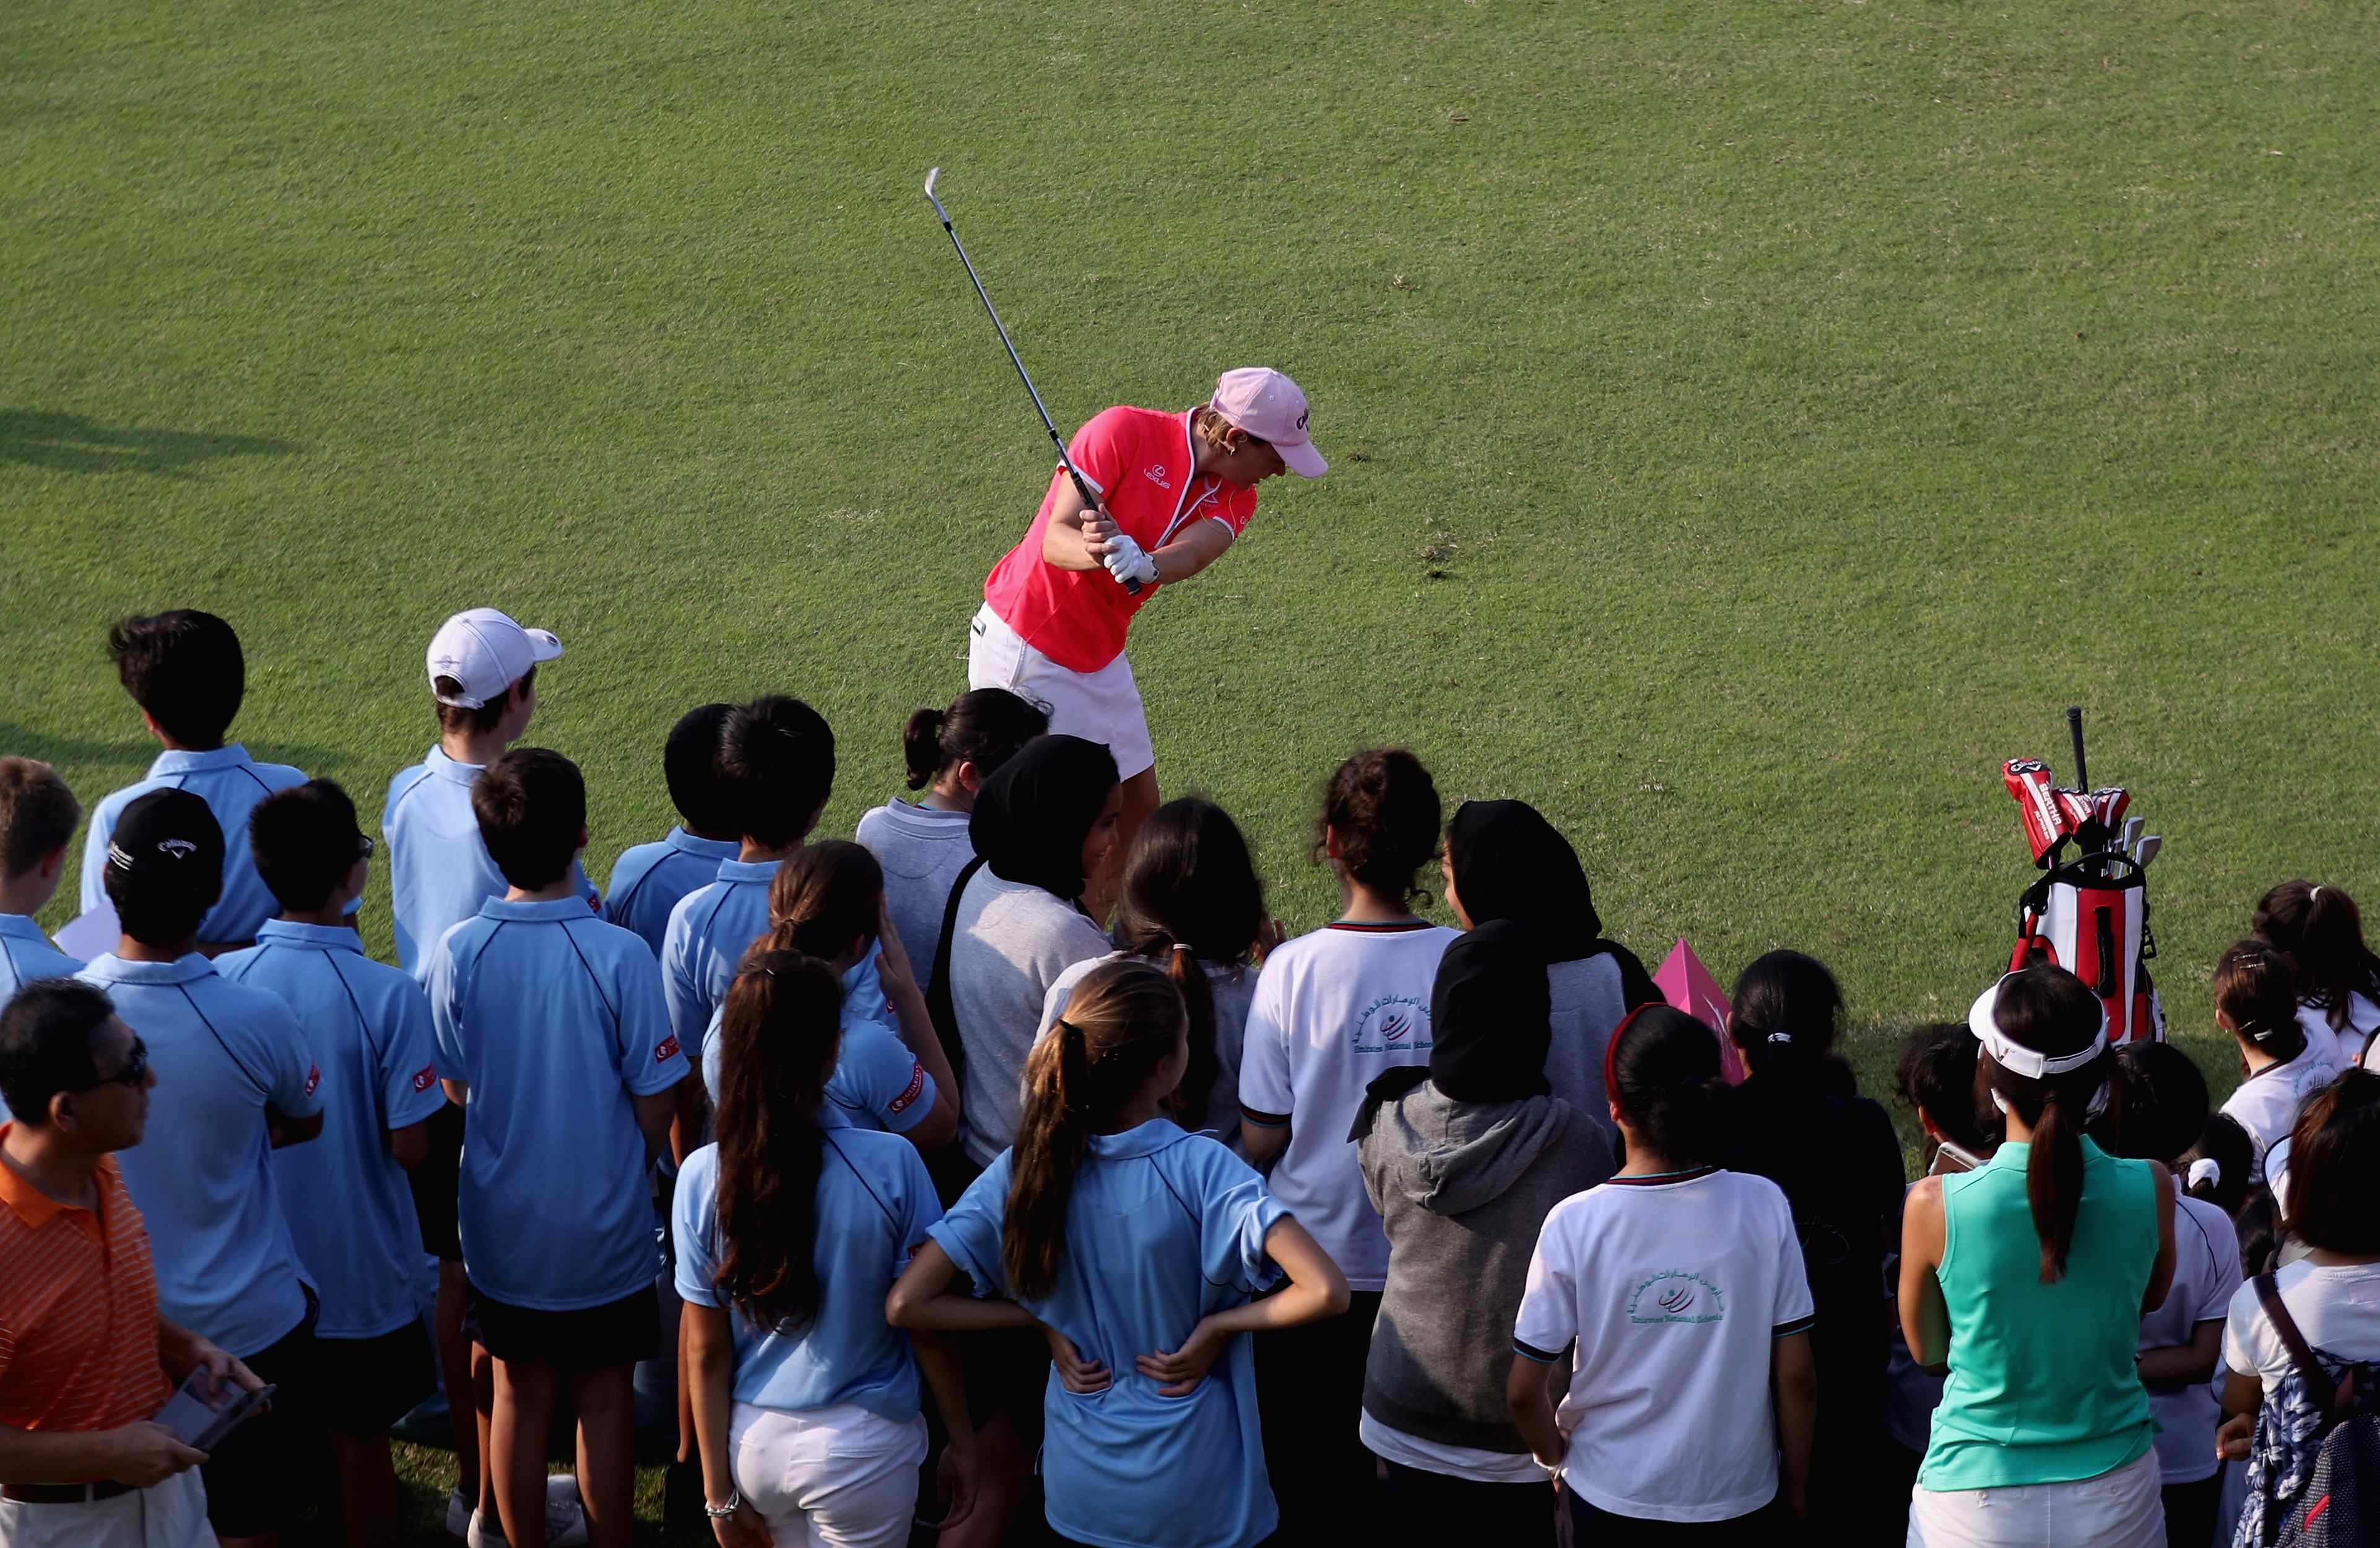 annika-takes-swing-as-students-watch-on